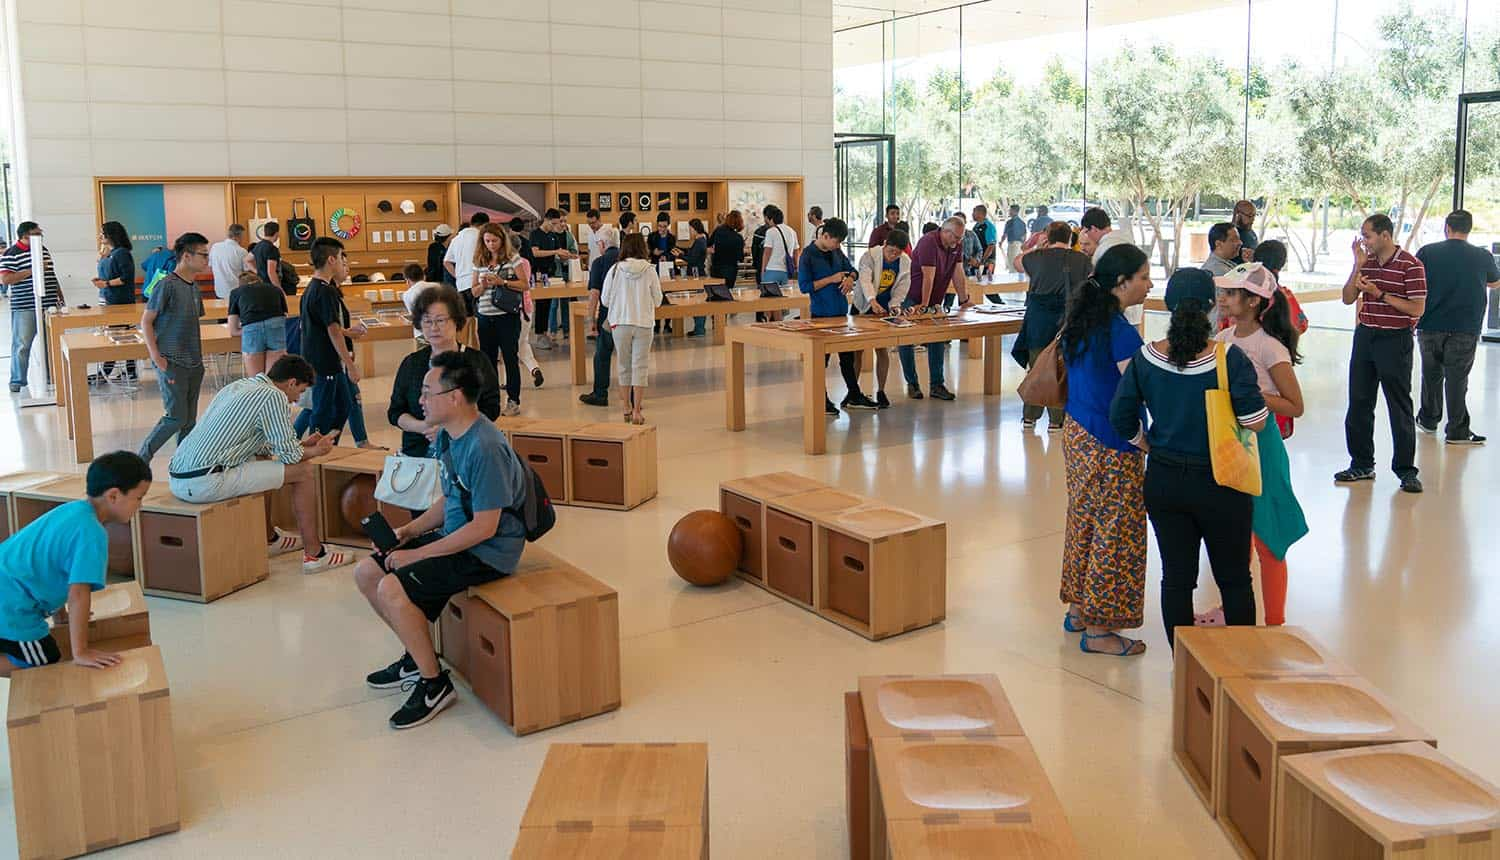 Group of people in Apple Store showing mass surveillance concerns with iCloud Photos scan